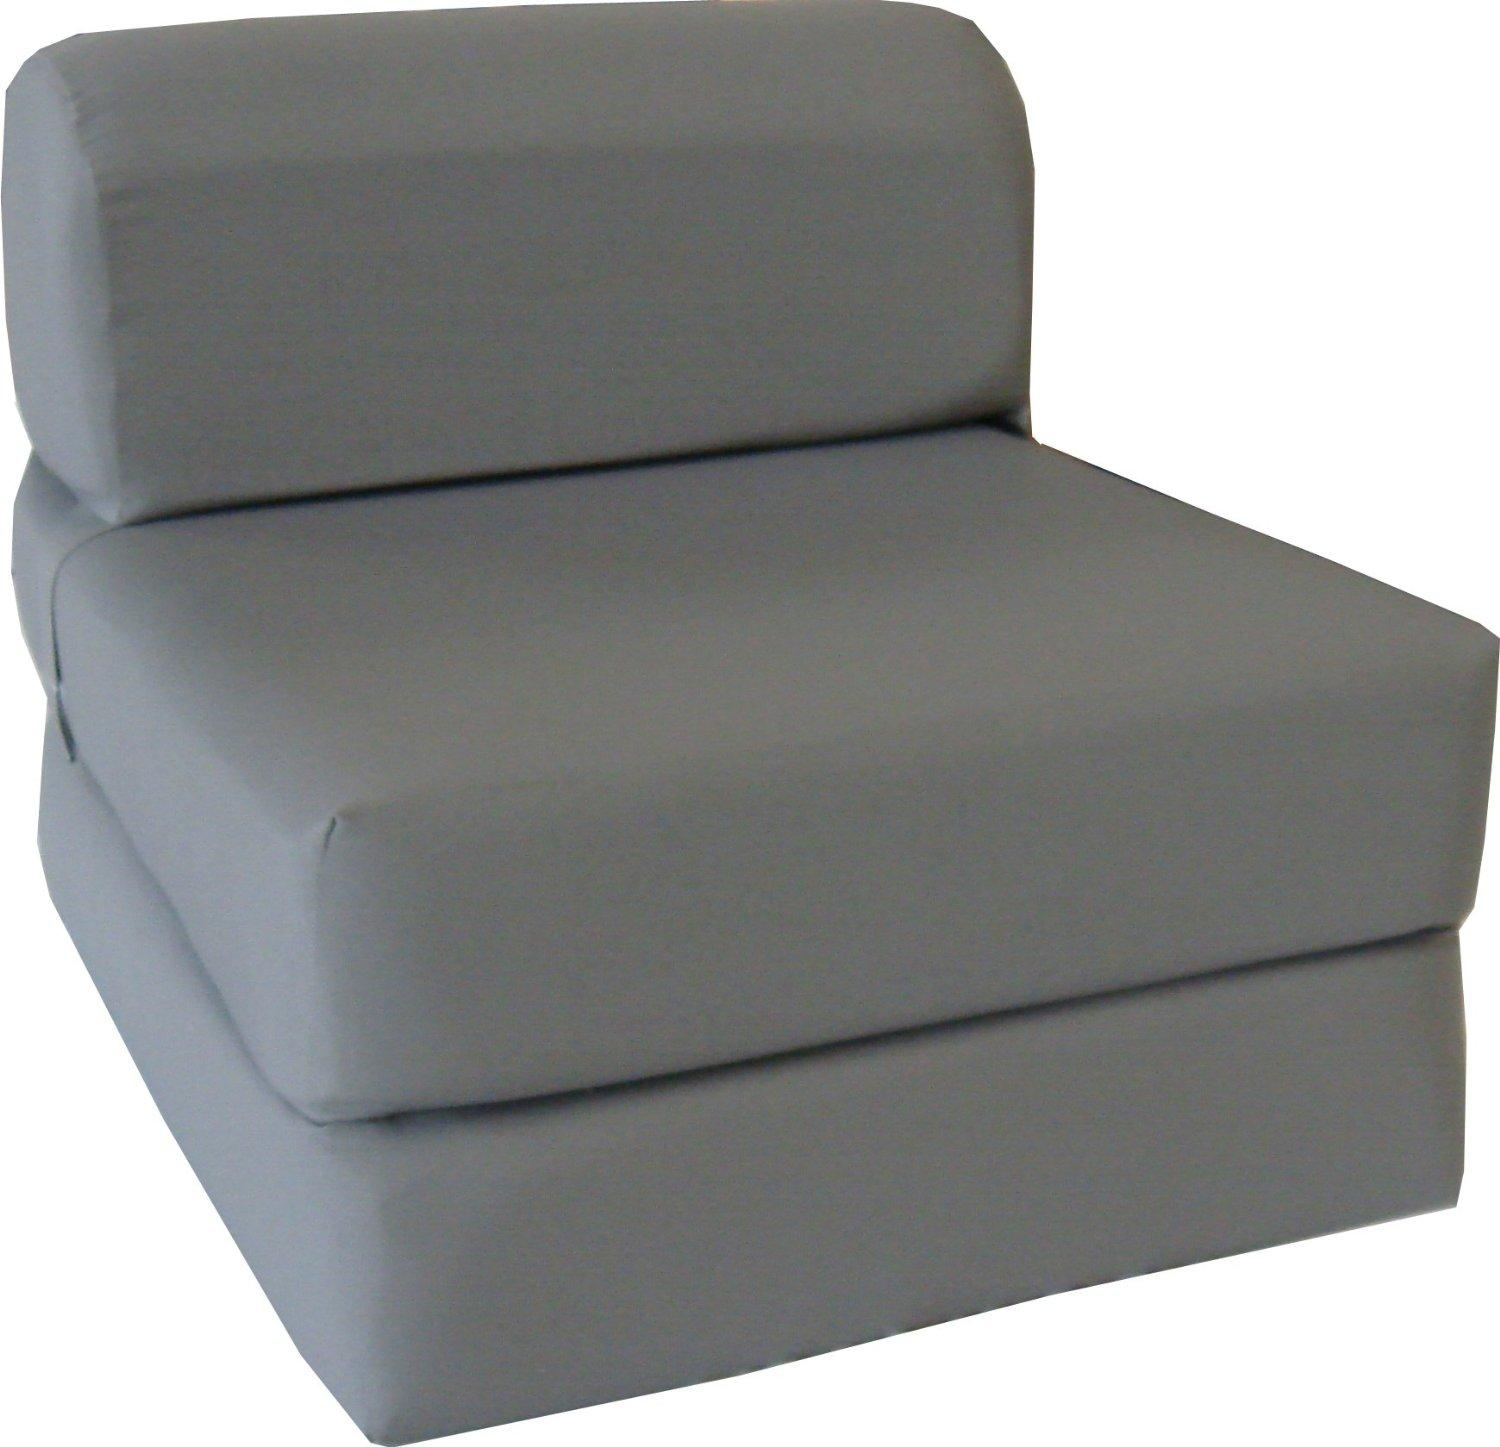 Top 10 Best Chairs For Bedrooms Reviews – [2017 Guide] Regarding Wide Sofa Chairs (Image 19 of 20)